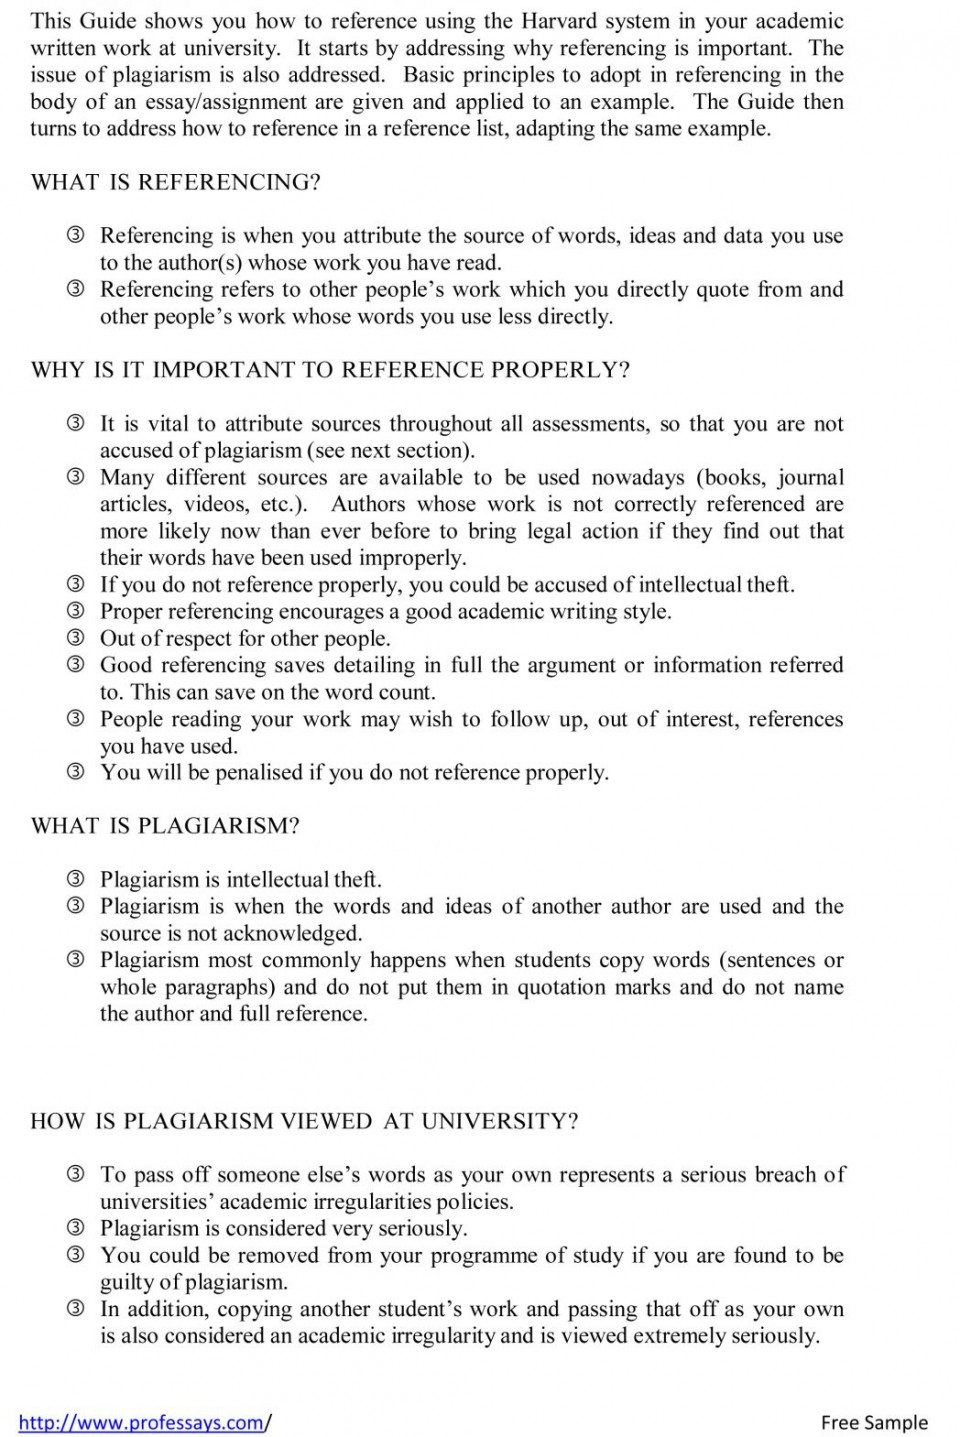 008 Reference Page For Essay Citing Sources In Mla Style Thesis How To Write References Writing H Secondary Cite Bibliography Citation Apa 1048x1569 Fearsome Example Format 6th Edition Creating A An Put 960